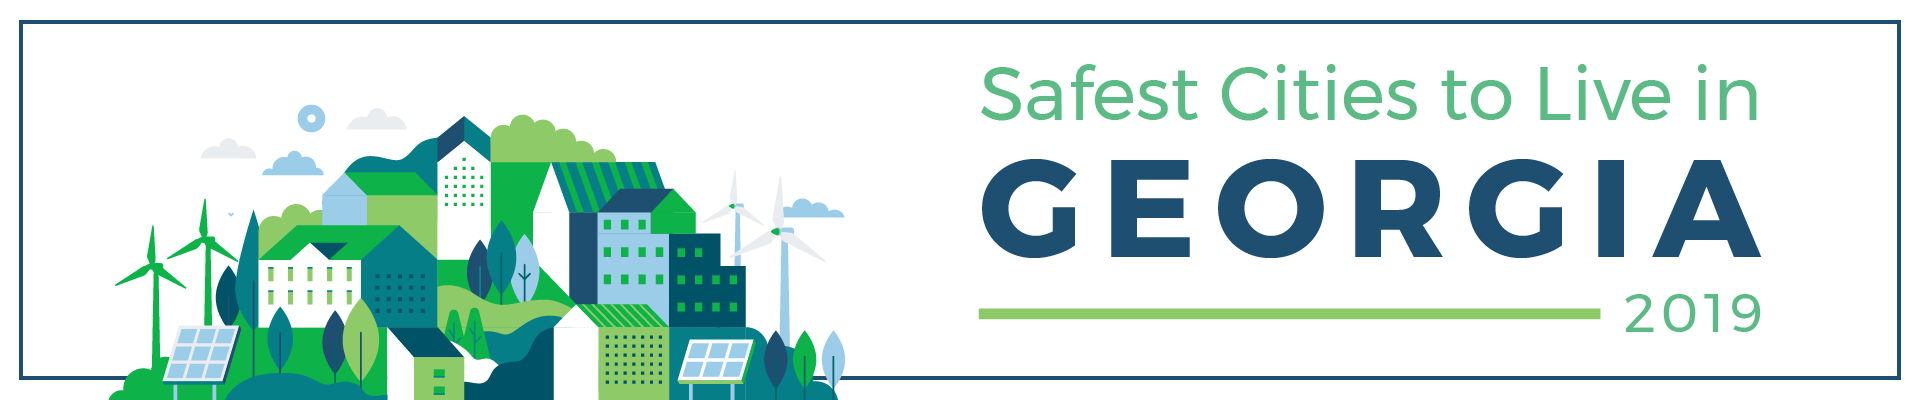 header - safest_cities_georgia_2019